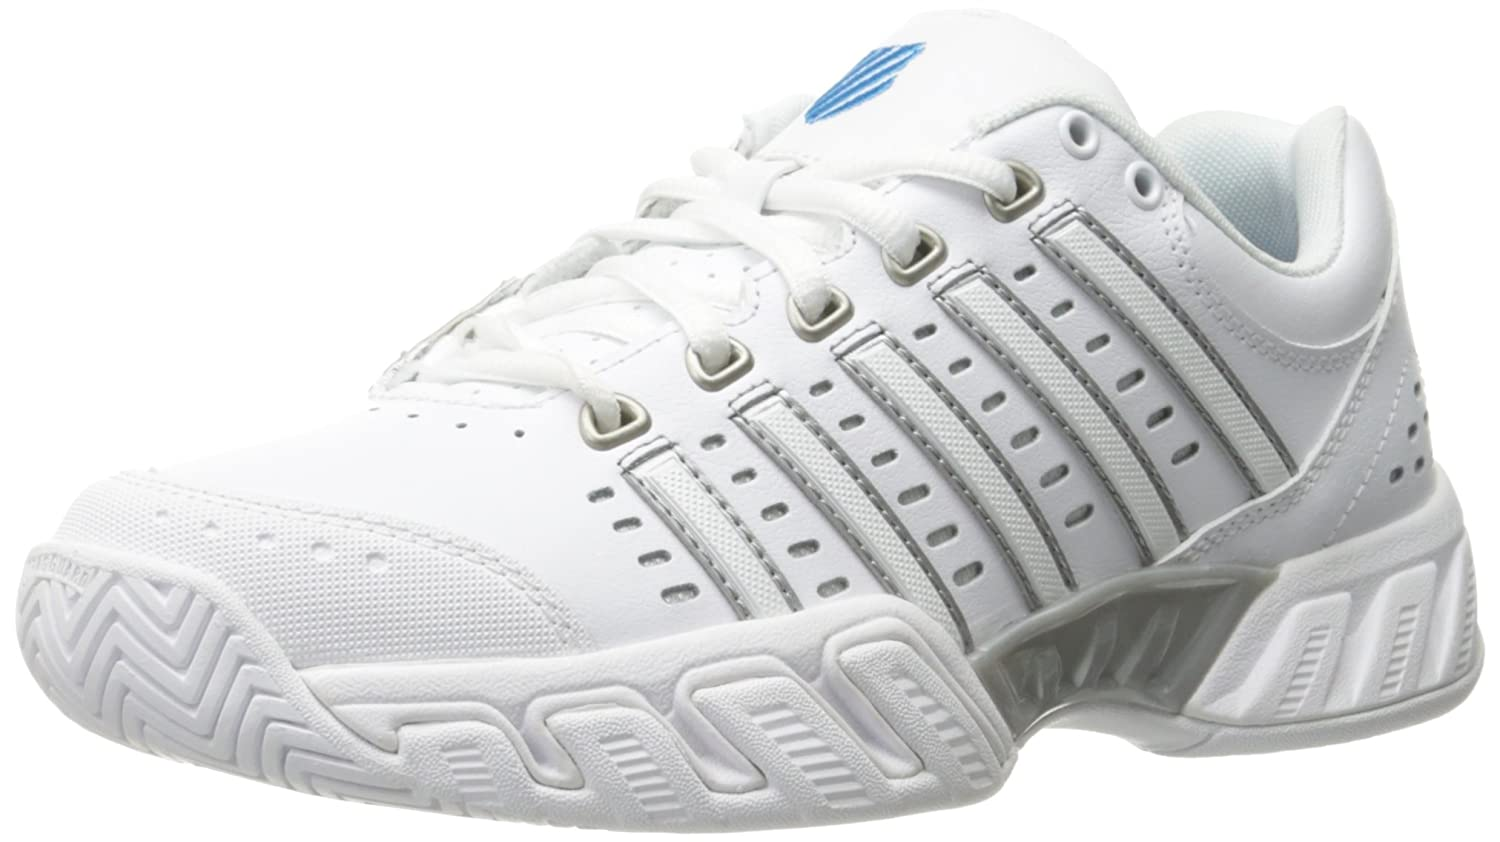 K-Swiss Women's Bigshot Light Tennis Shoe B01LS81Y8O 12 B(M) US|White/Hawaiian Ocean